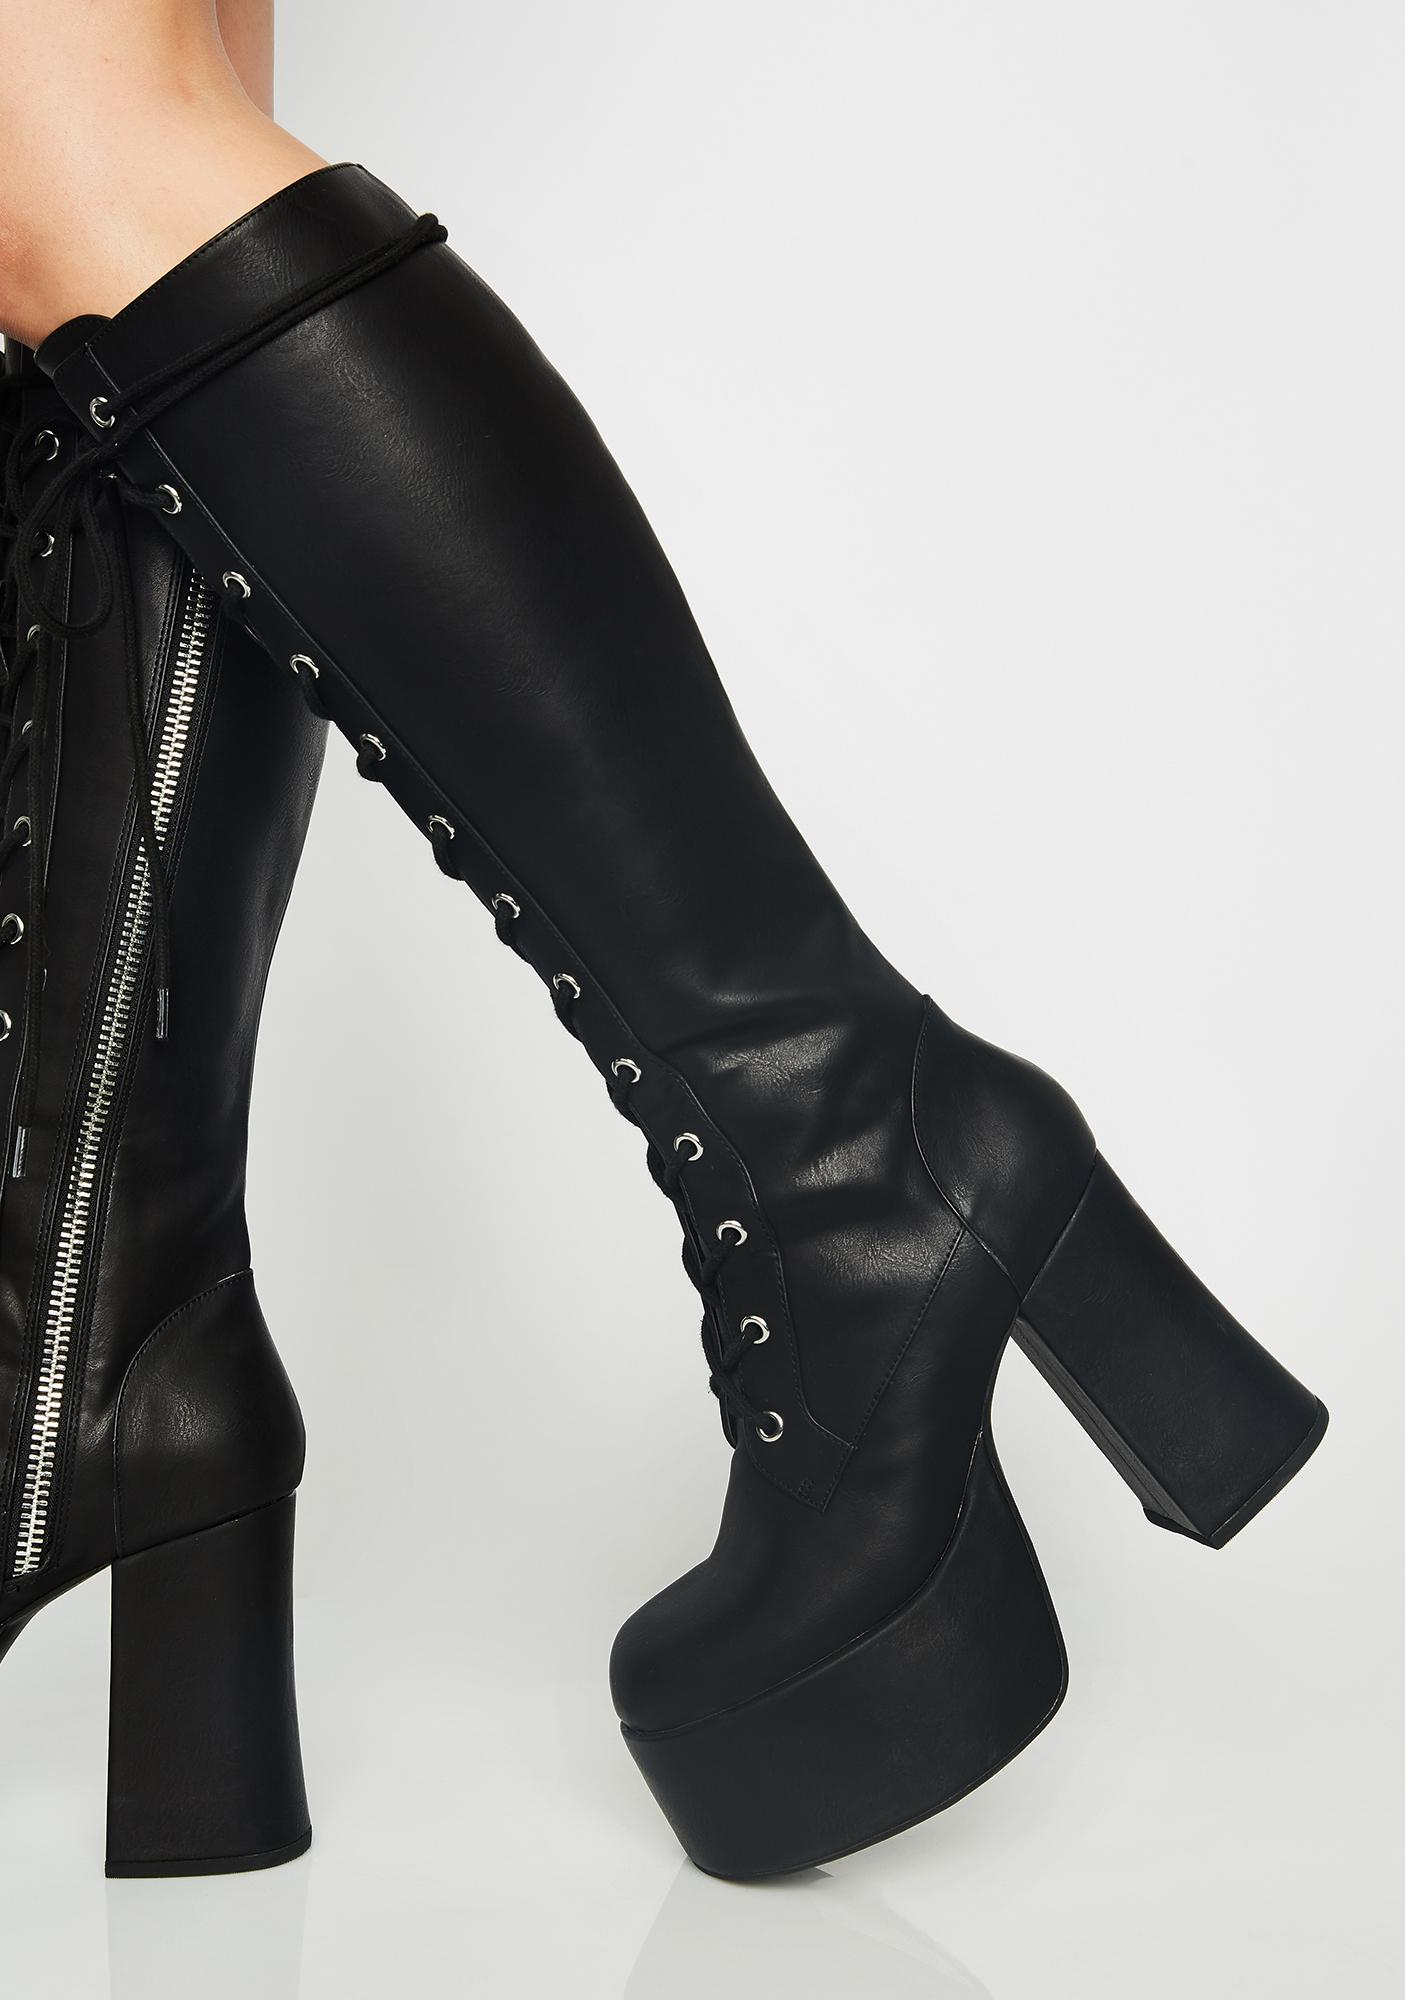 Current Mood Twisted Sis Platform Boots